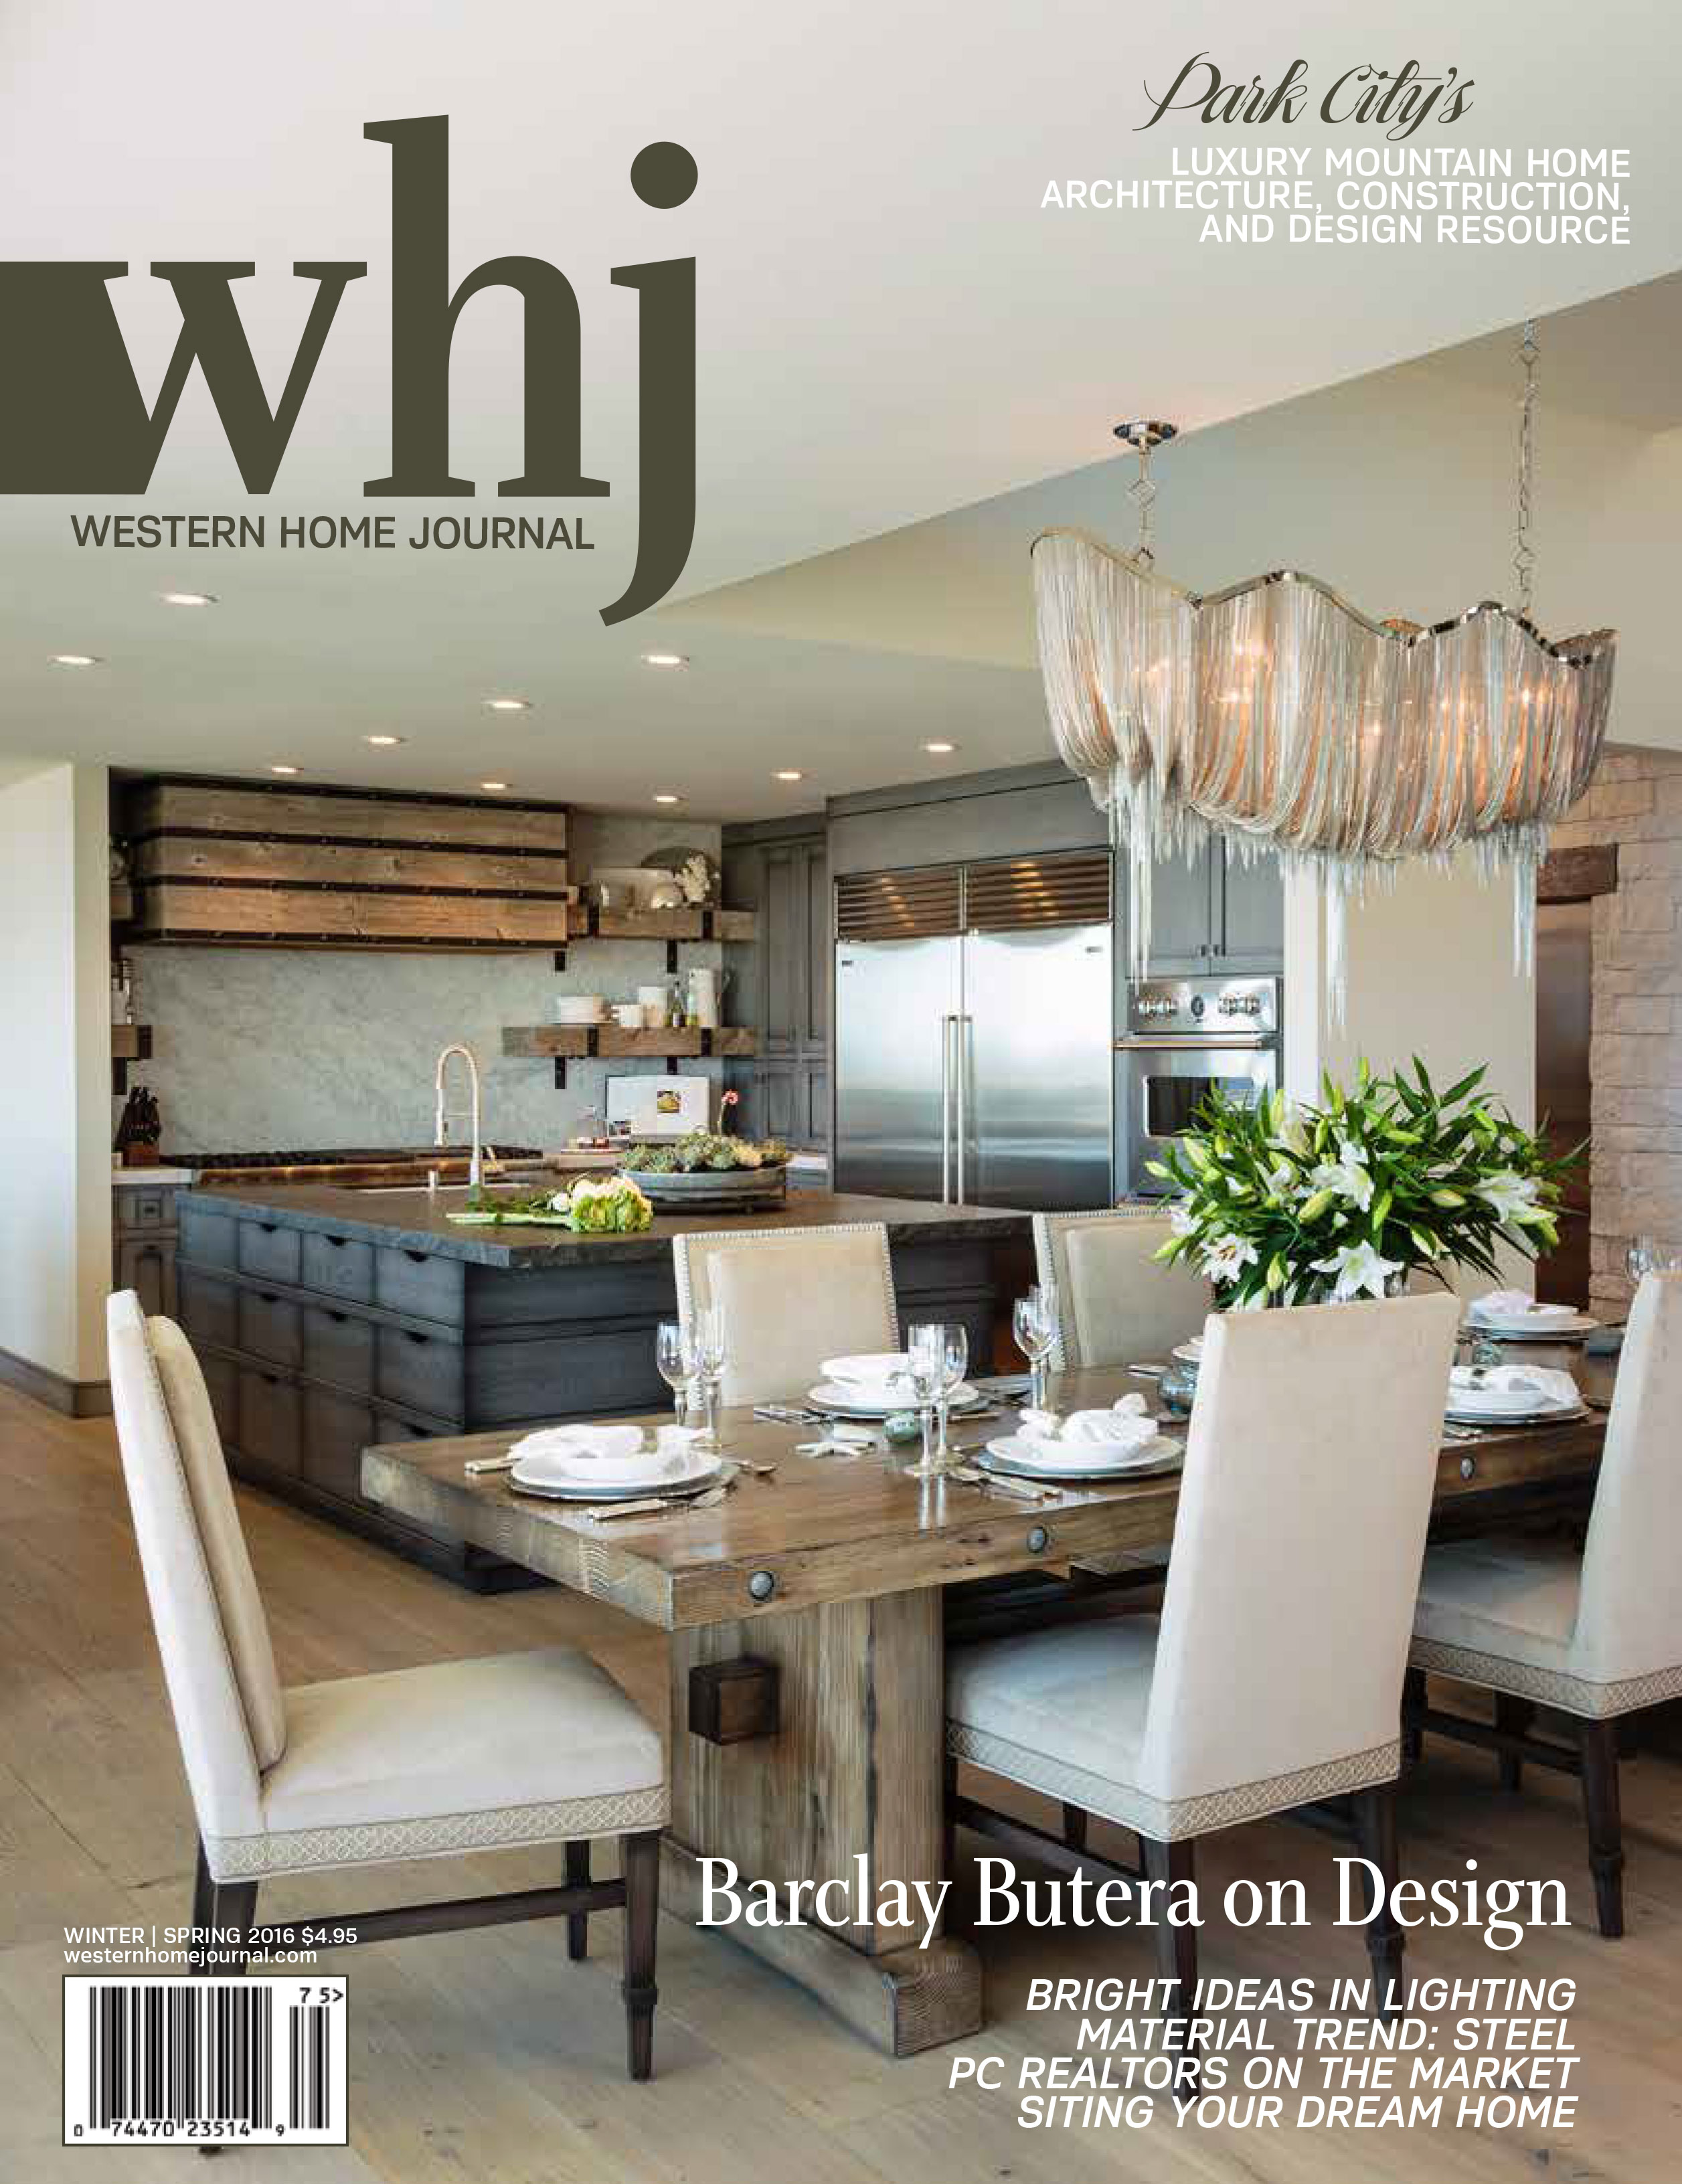 Western Home Journal, 1 of 3